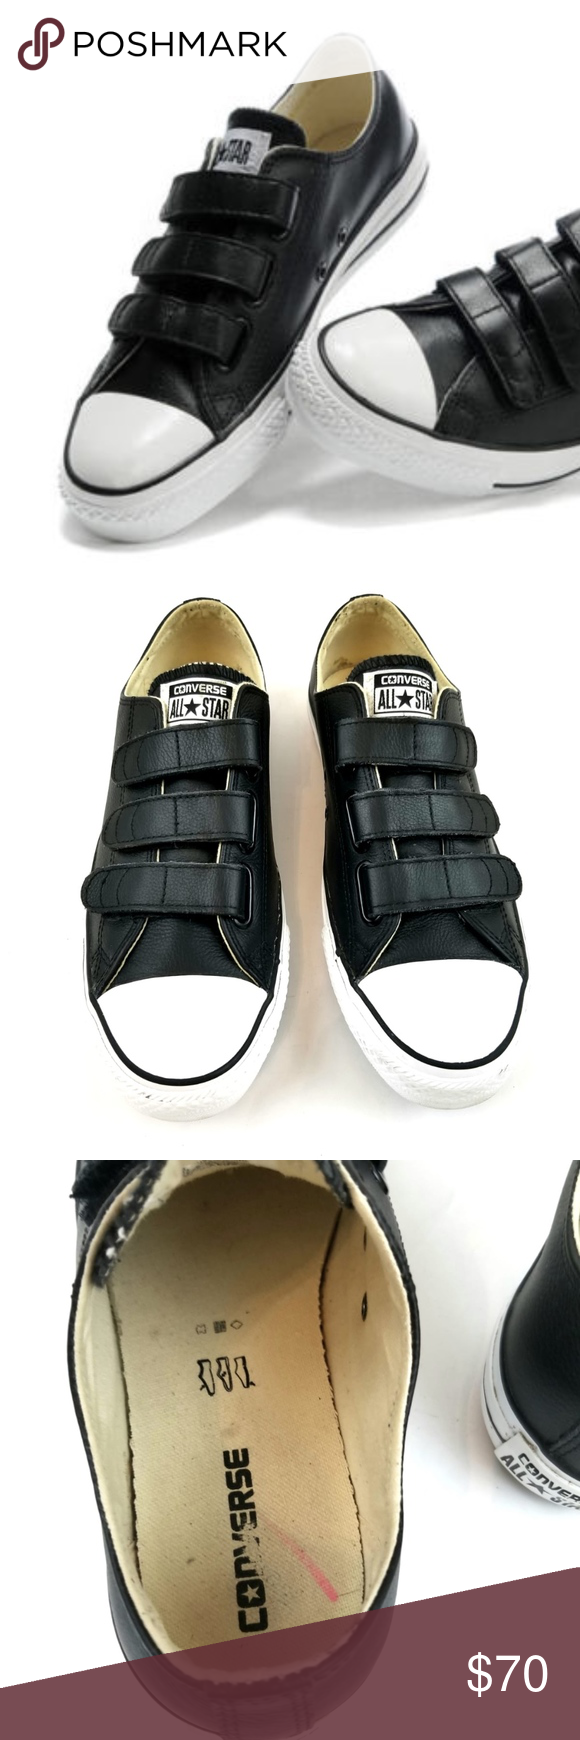 c2b7d44e12d9 Converse Black Leather All Star Low Tops Sneakers Black Leather Converse  All Star 3 Strap Velcro Black Low Tops Sneakers Converse leather 3 strap  chuck ...